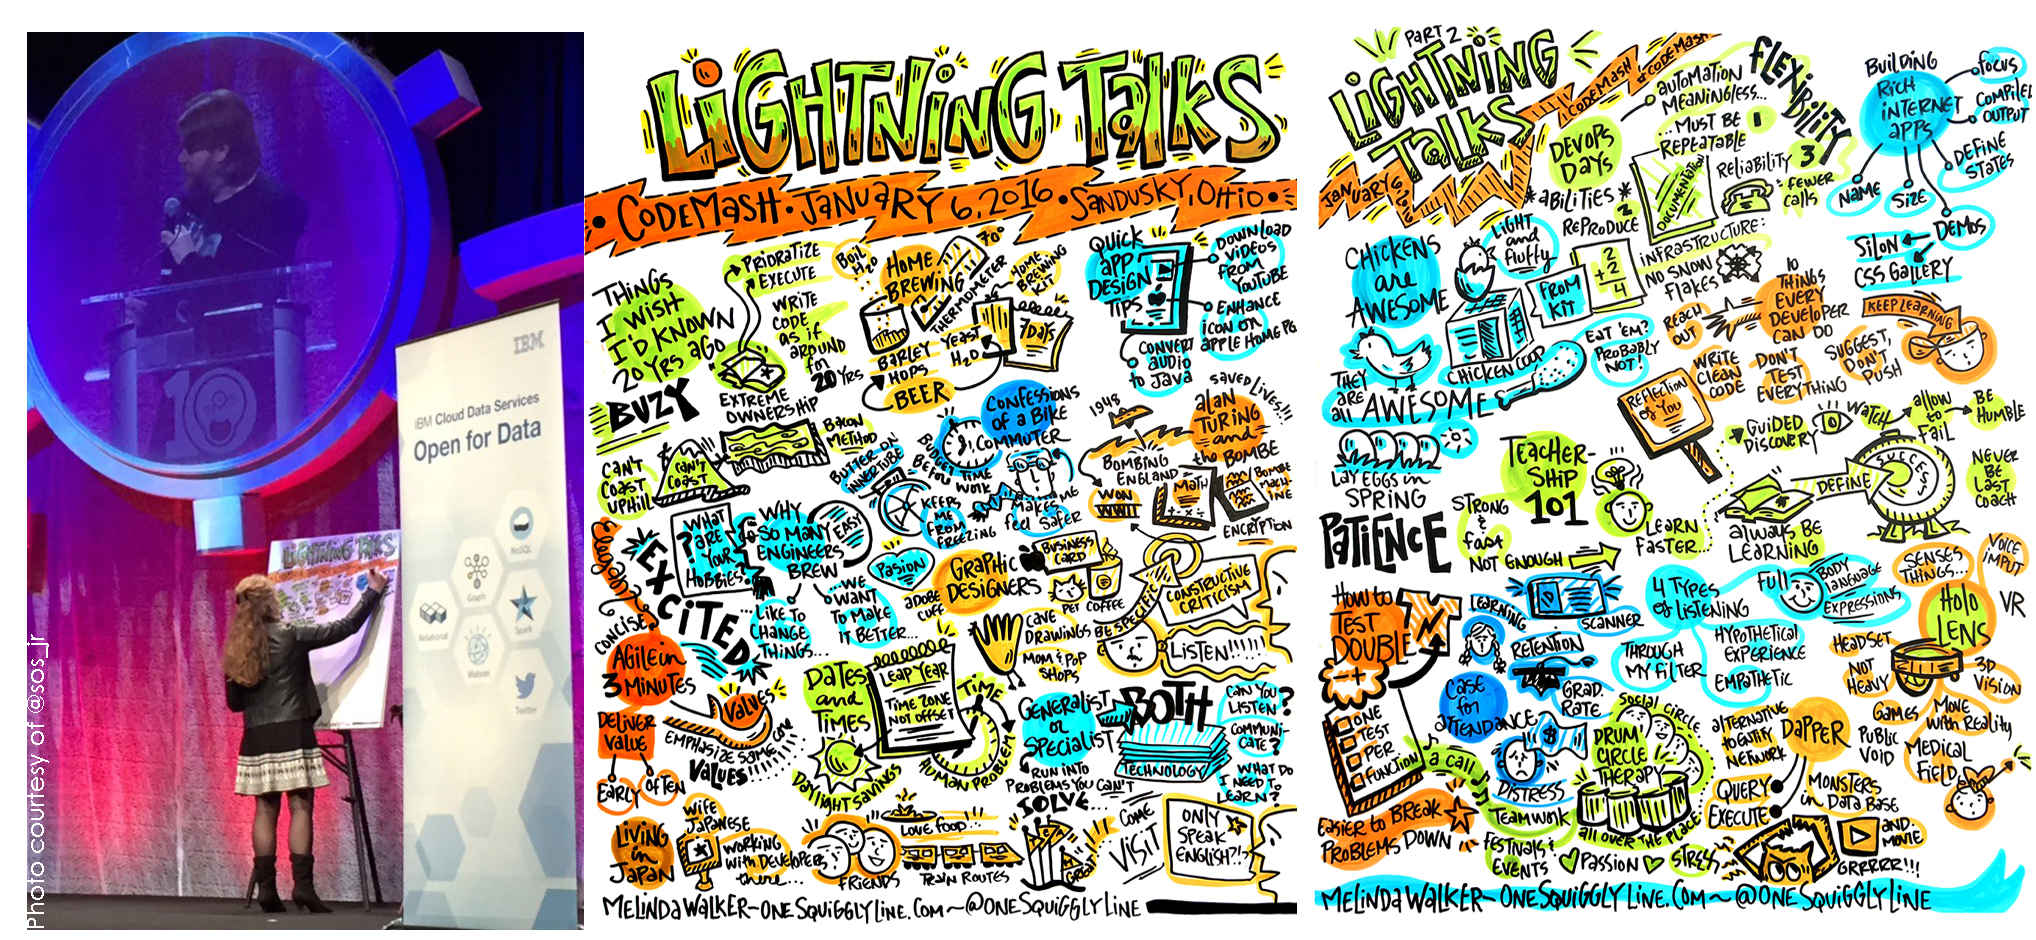 Live Illustrated Visual Notes (Graphic Recording): CodeMash 2016 — Ohio